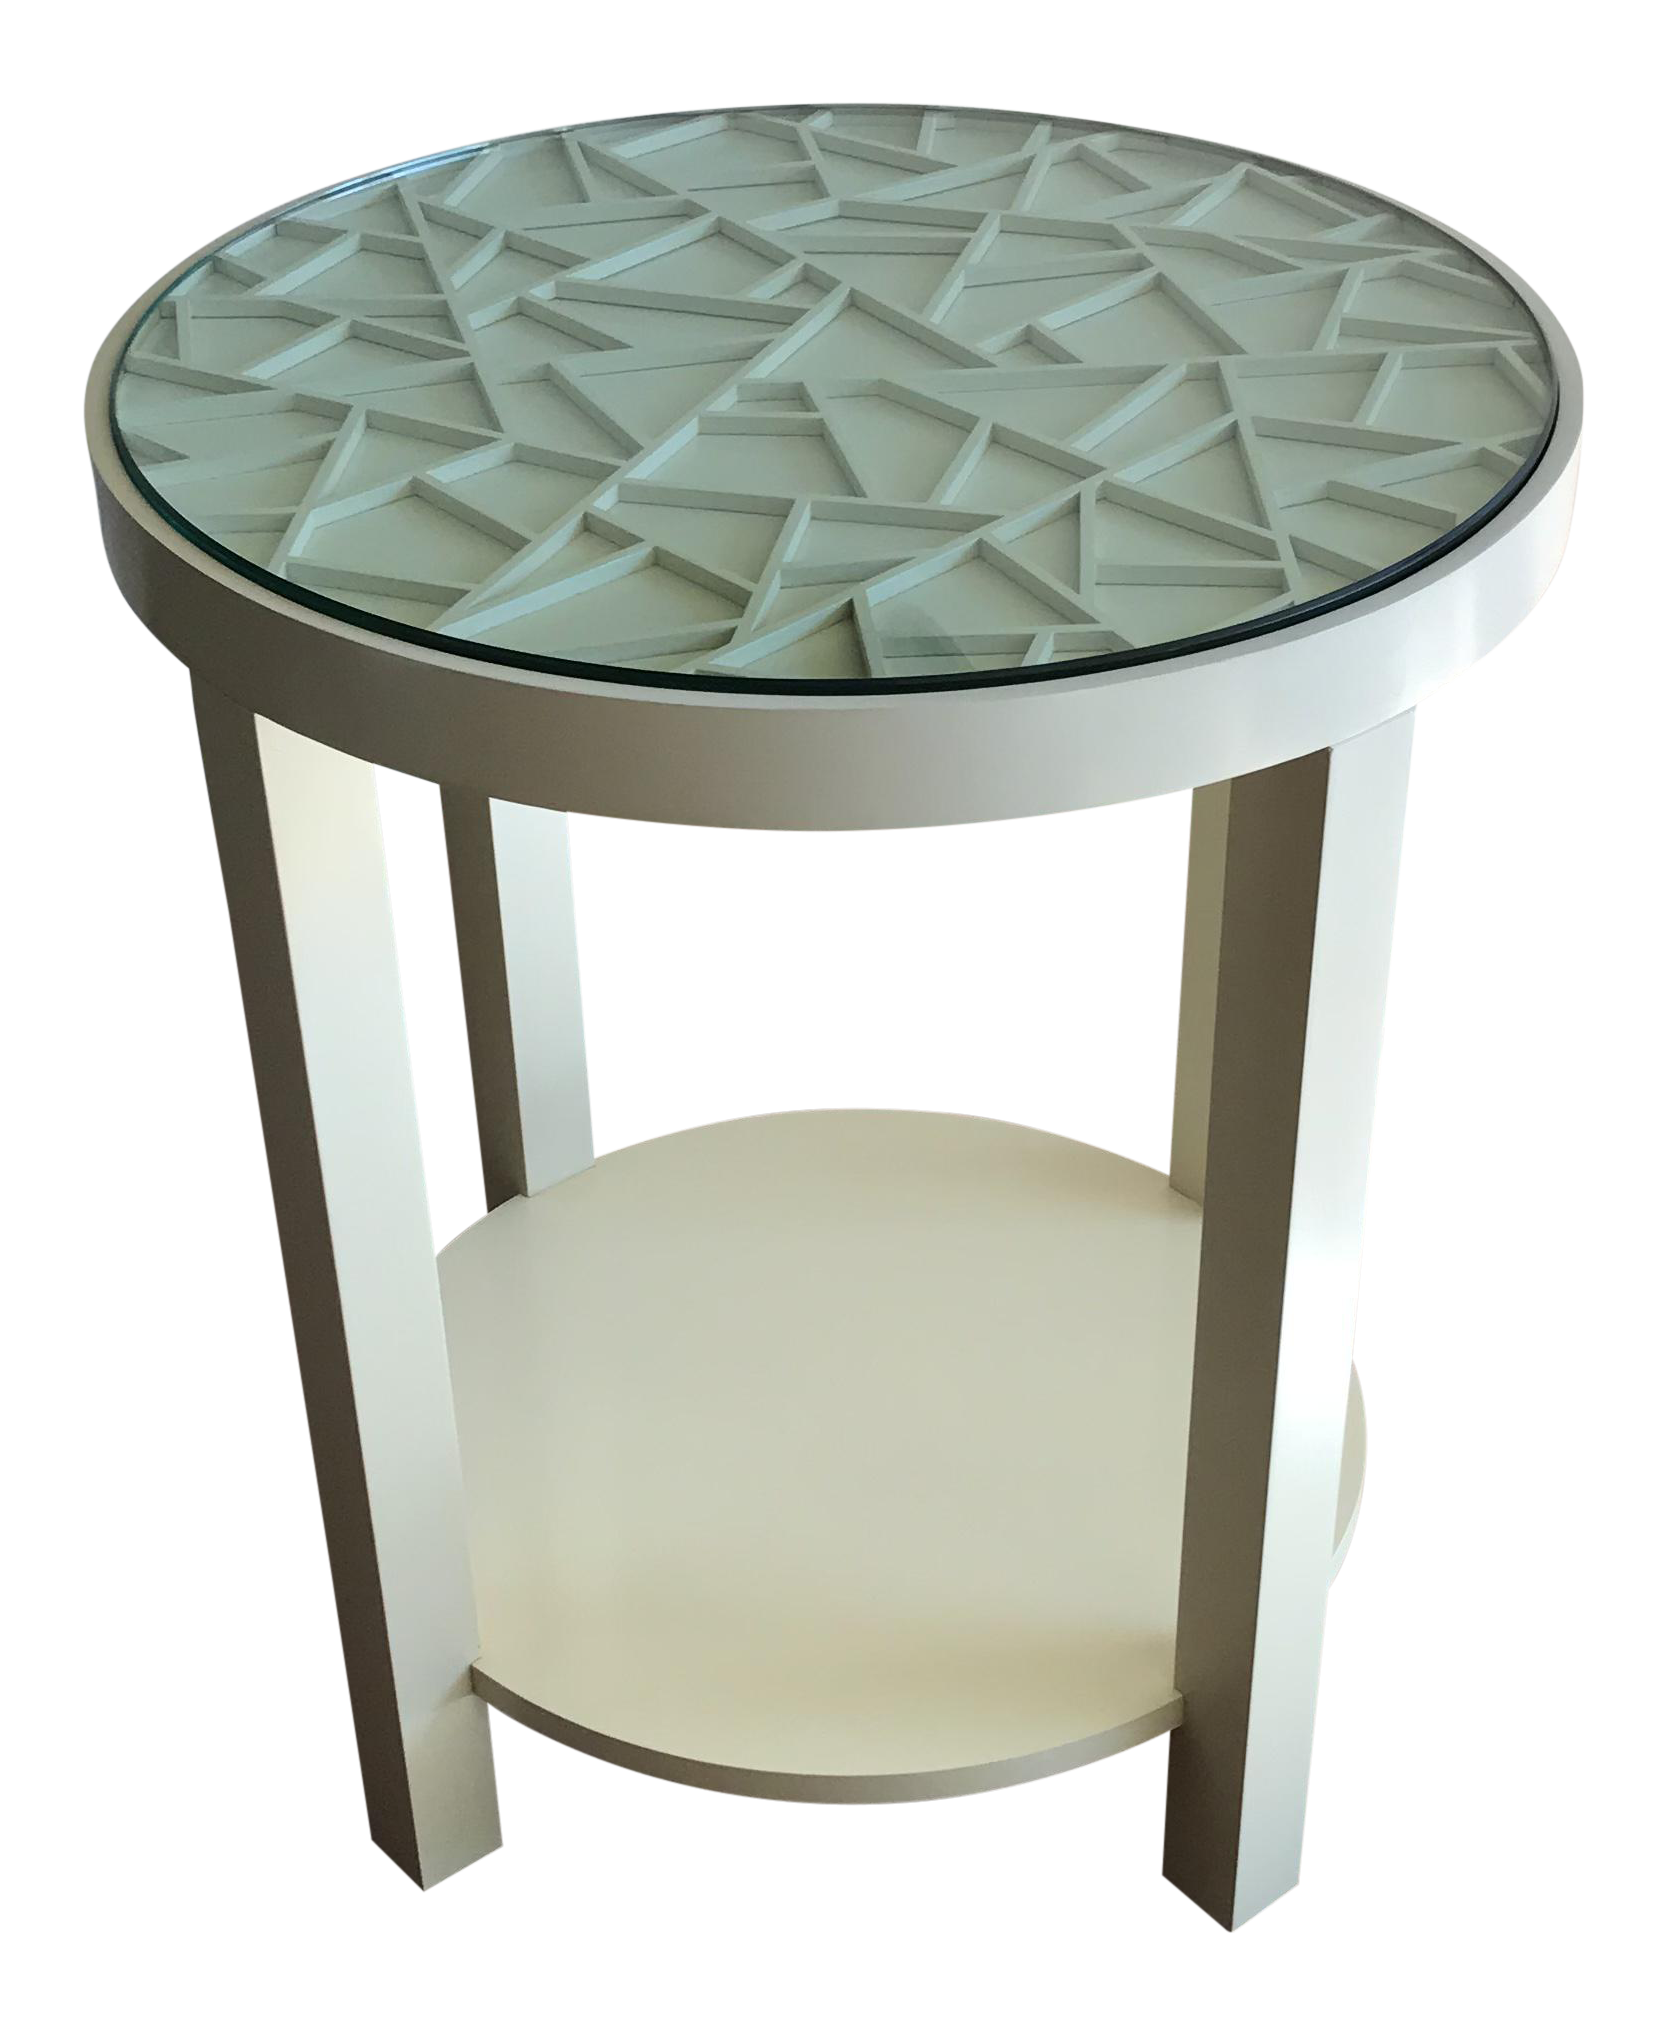 baker furniture round off white with glass top accent table chairish wall decor black and dining acrylic entry deck umbrella garden marble designs transitional chrome side under